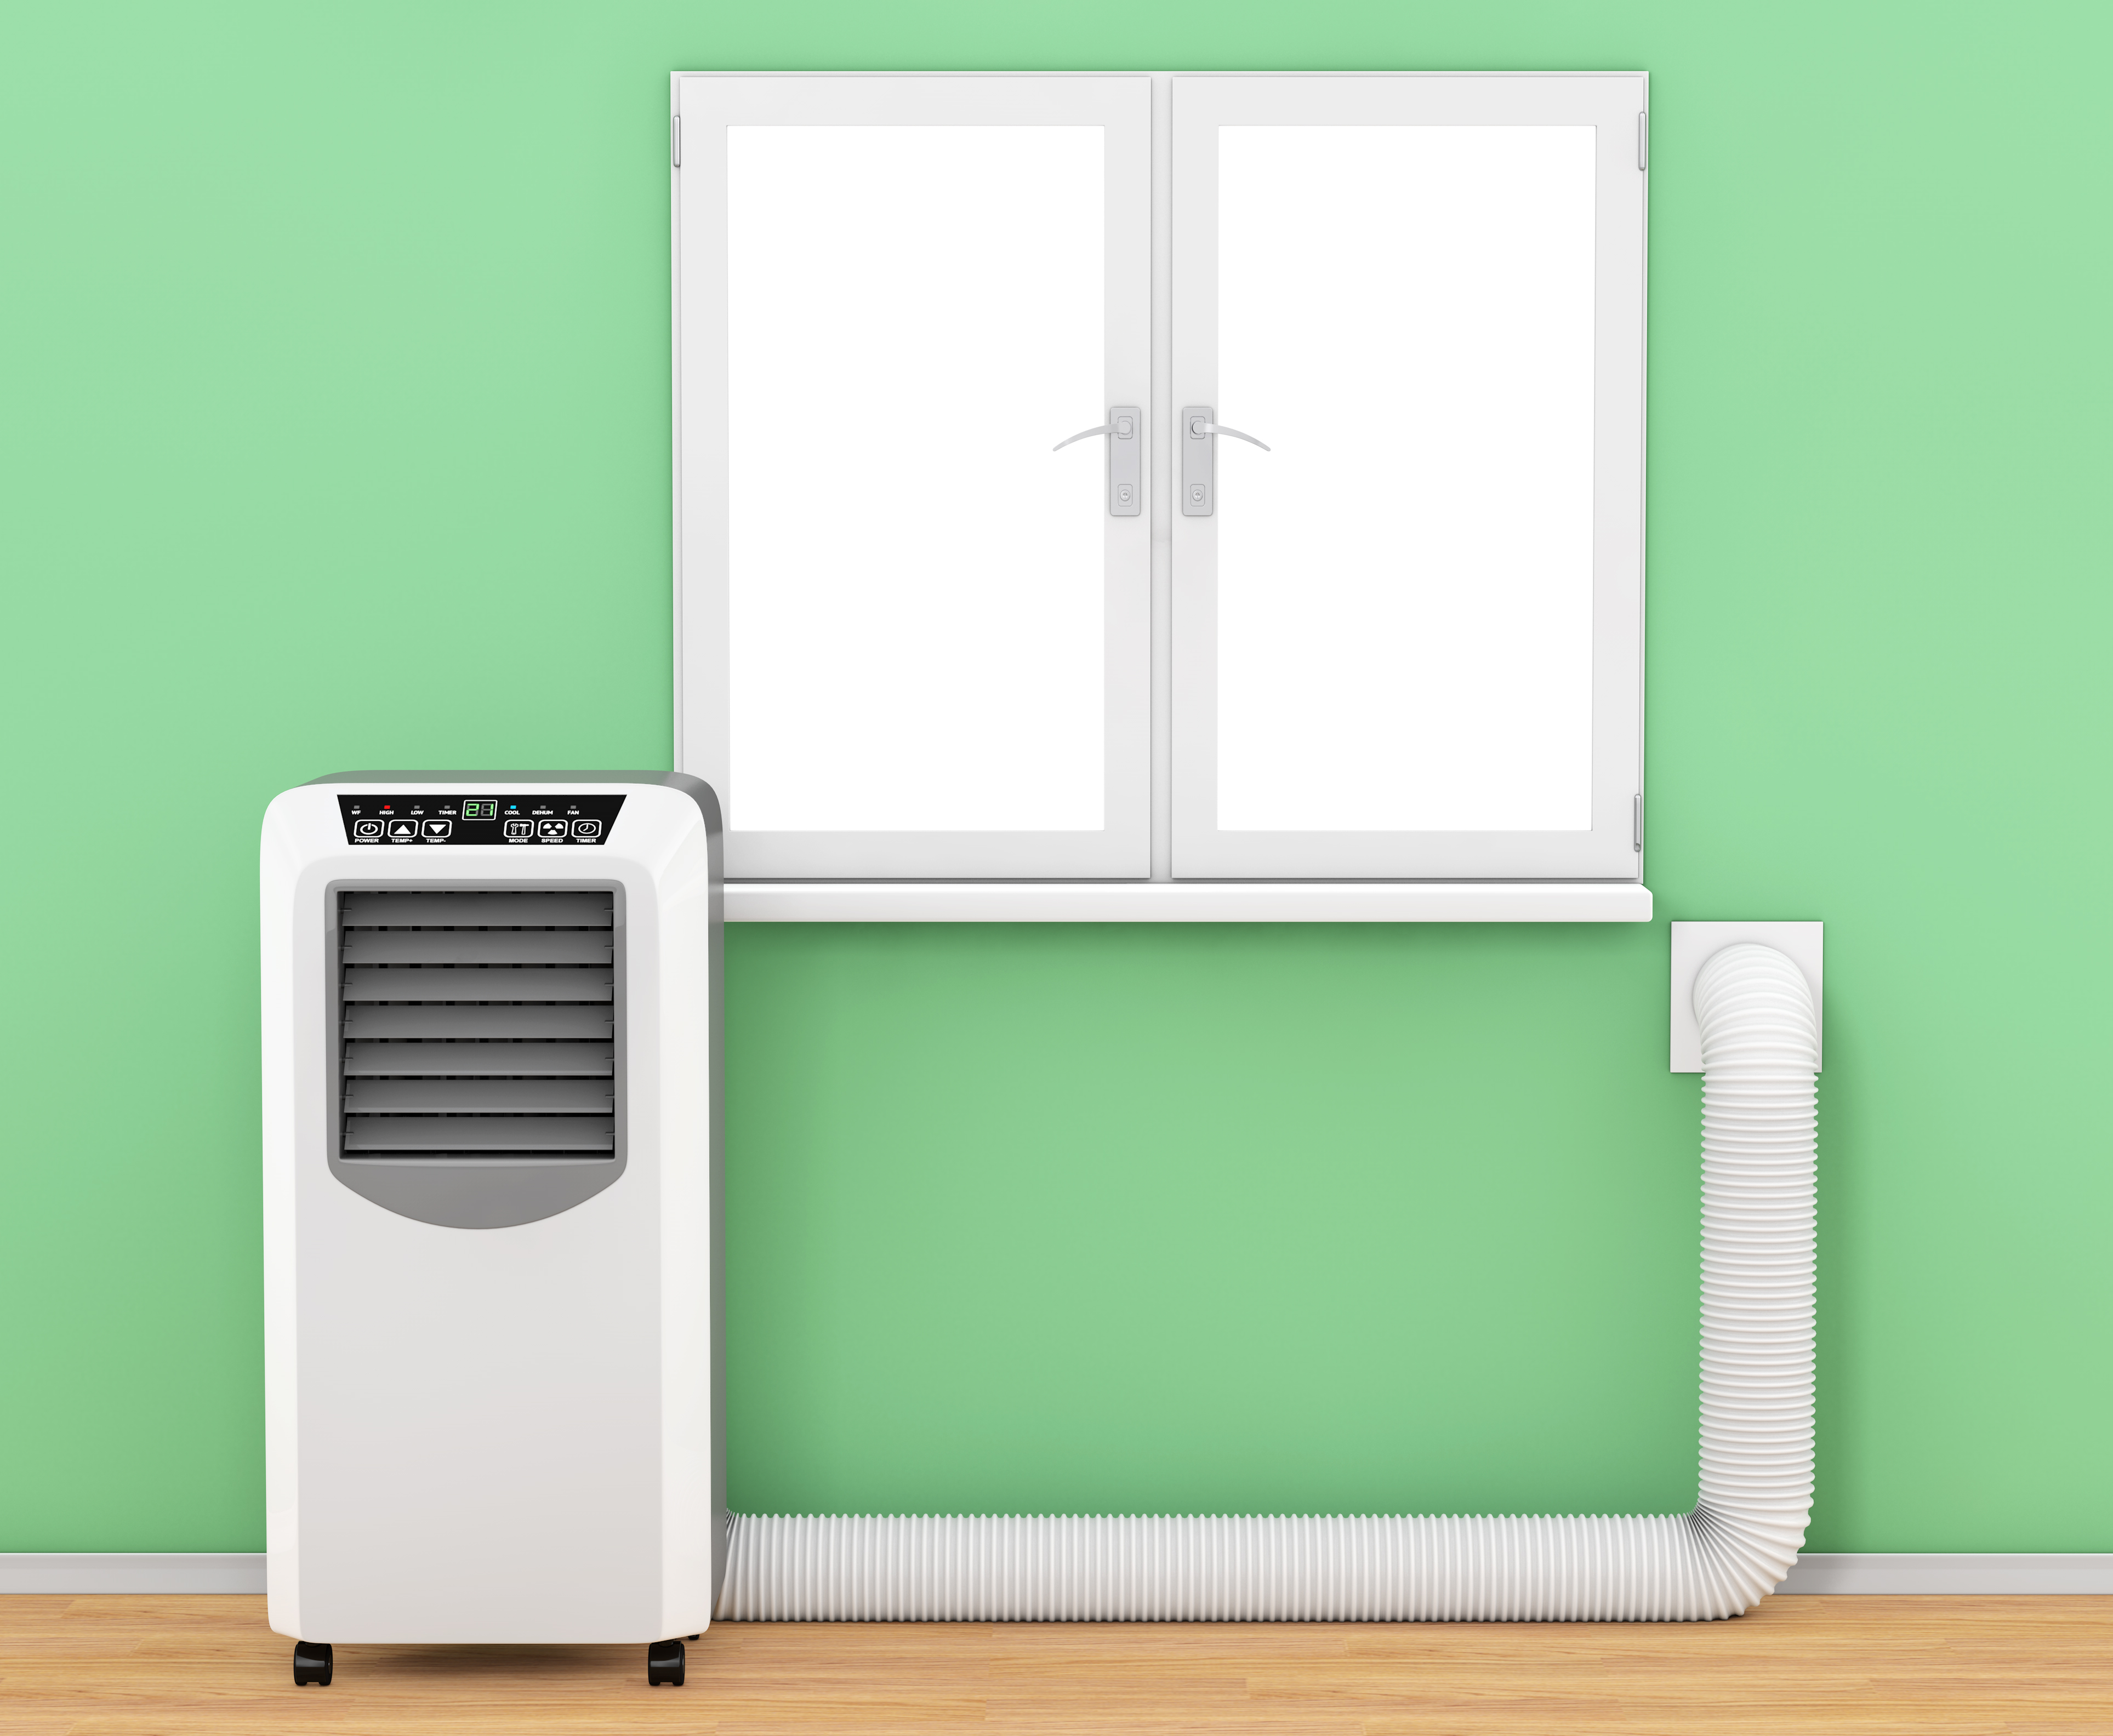 Ask Dirk: Are portable air conditioning units a good alternative?